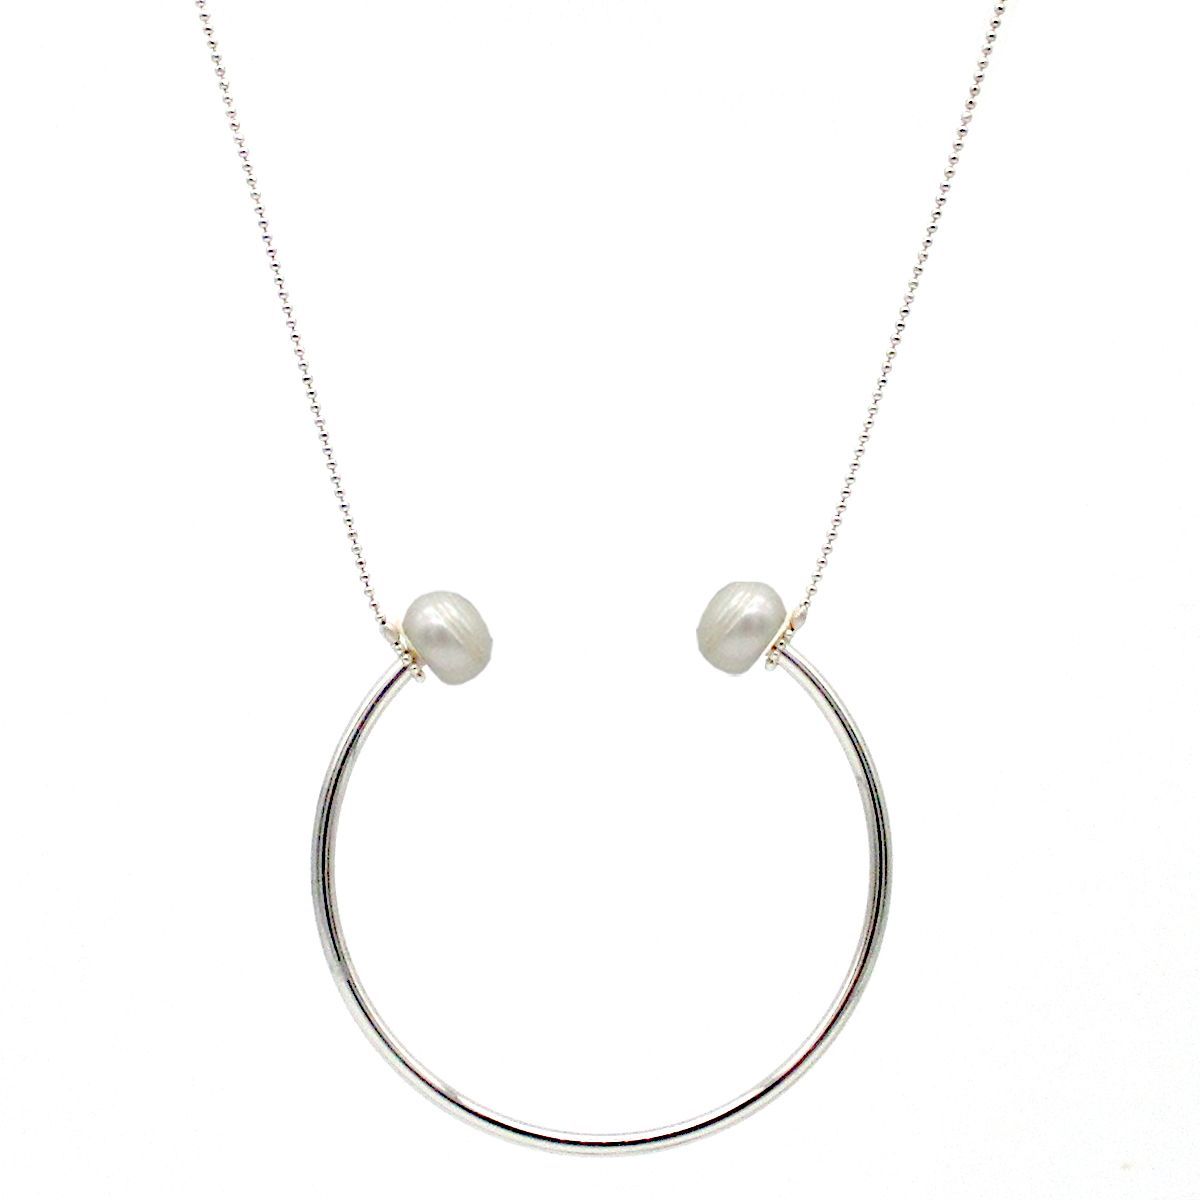 Calypso real Pearl Silver U necklace